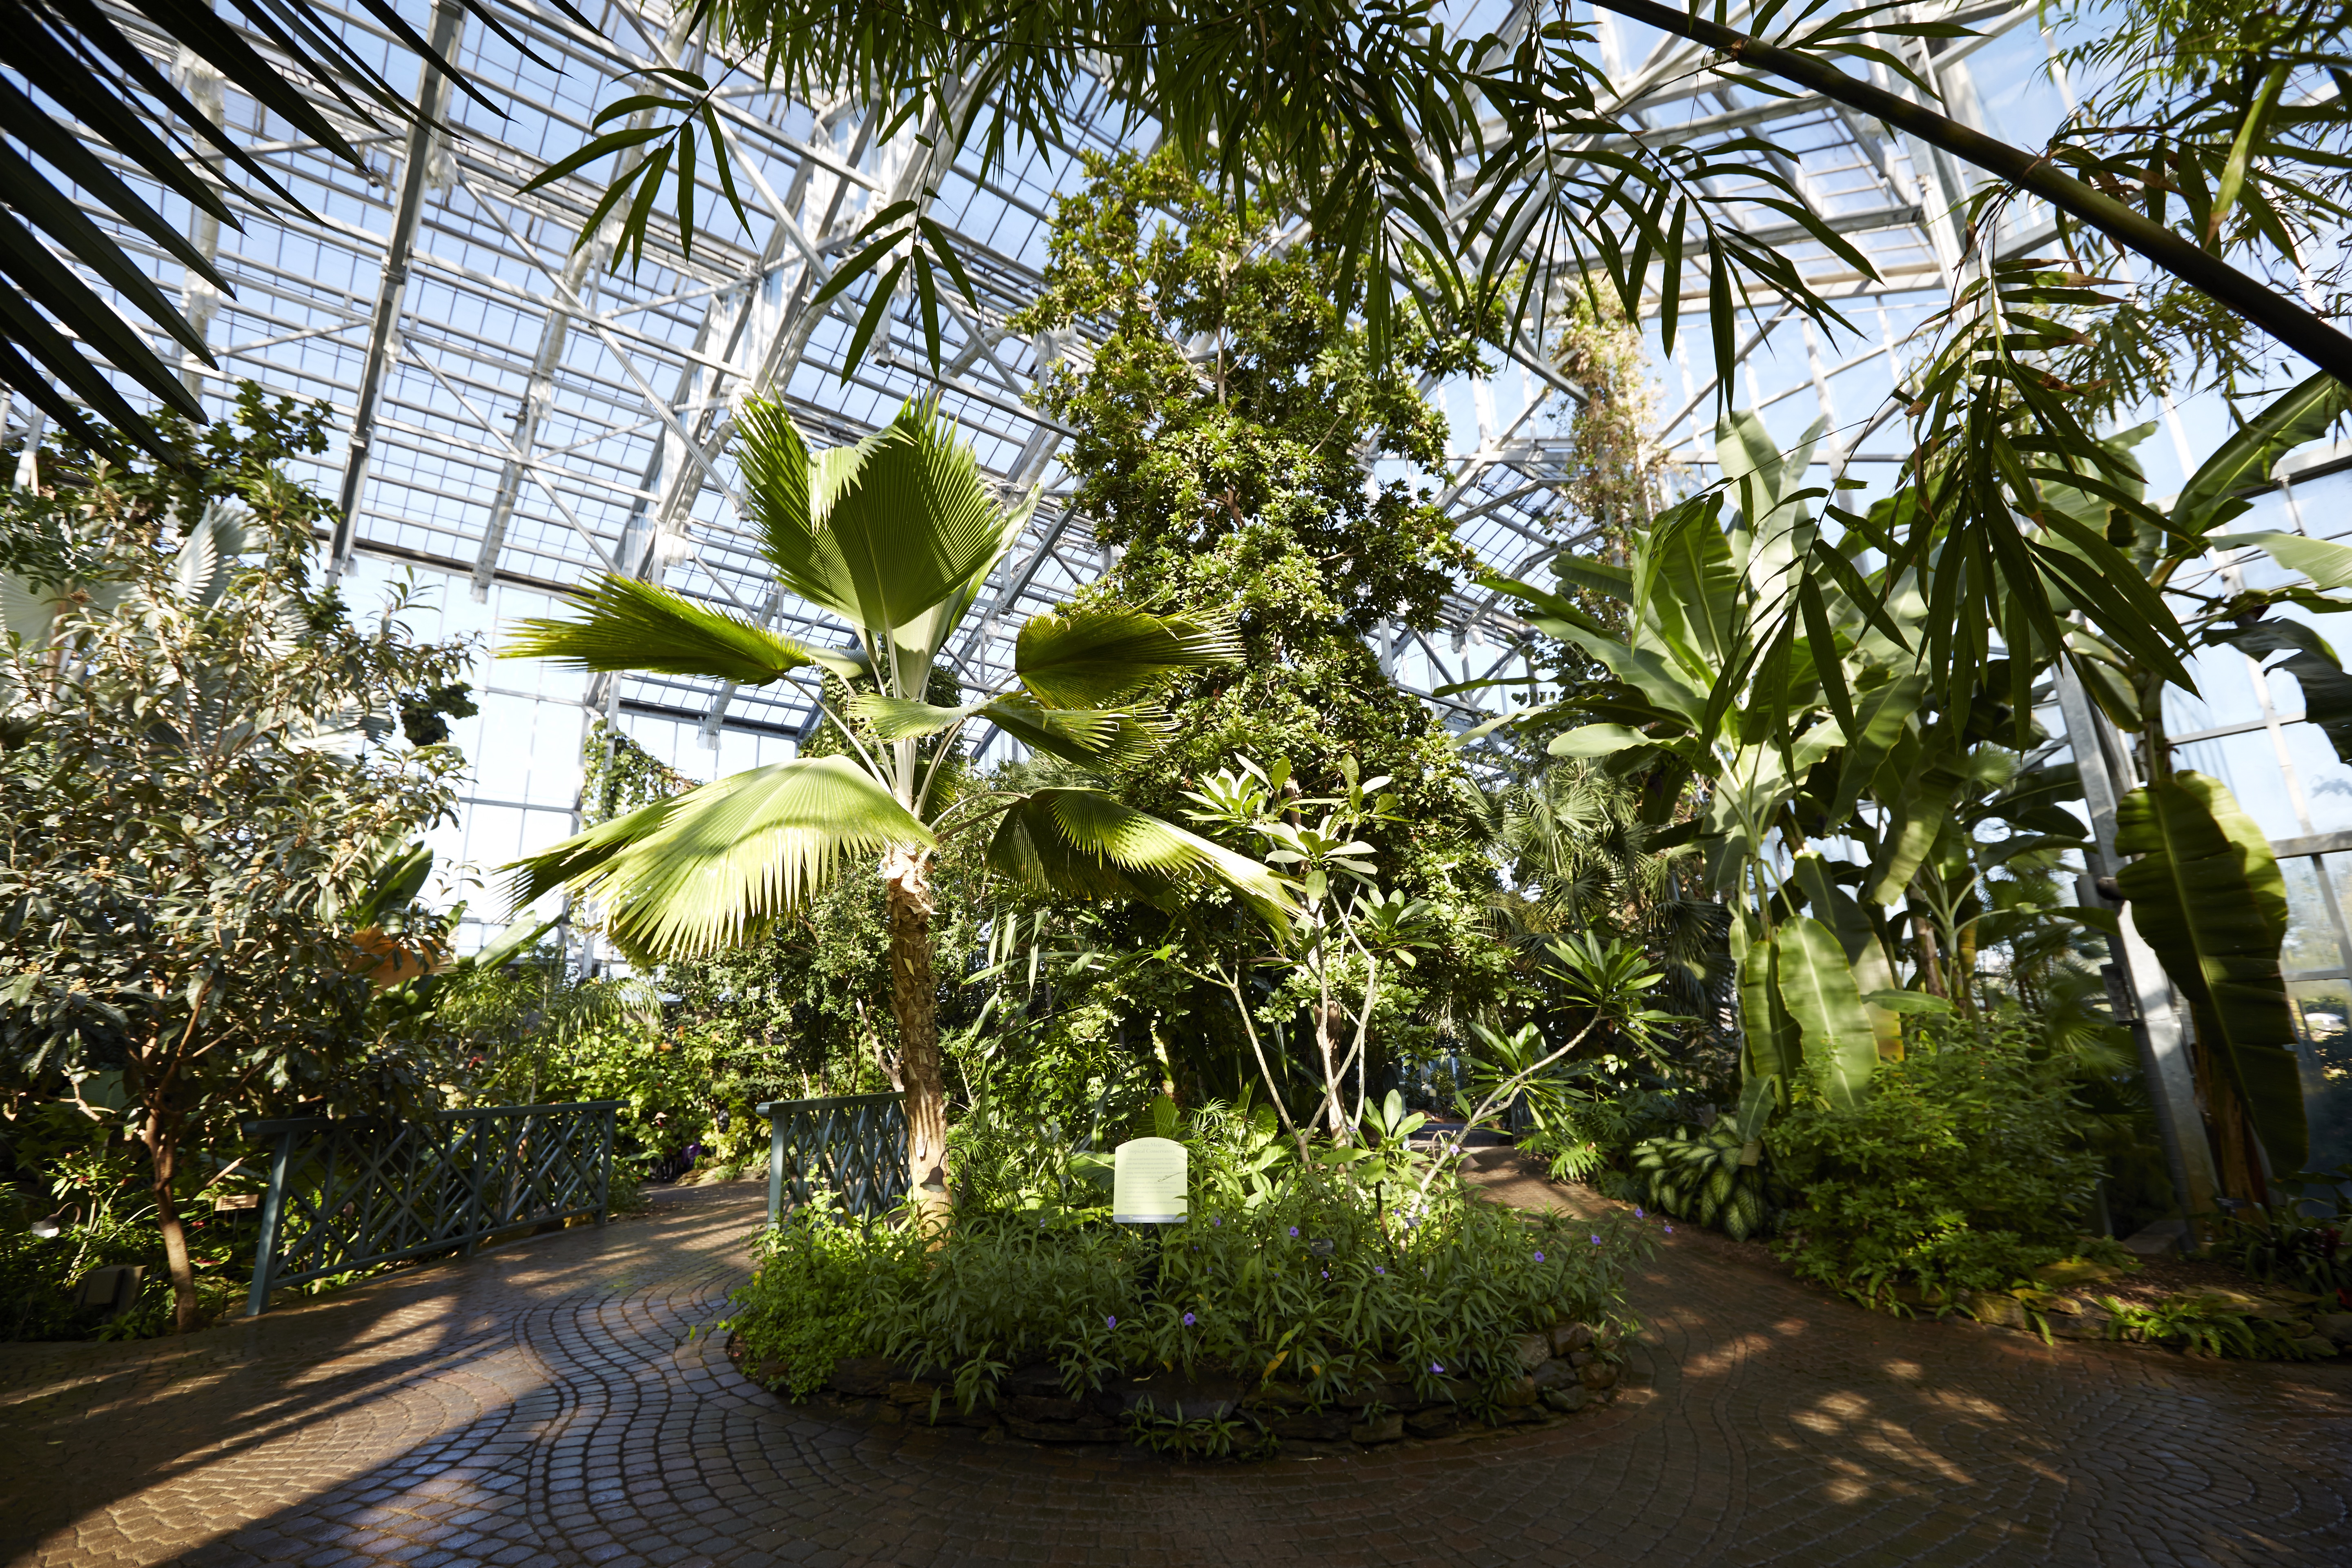 Lena Meijer Tropical Conservatory Inside photo by DeanVanDis copy - Butterflies Are Blooming Grand Rapids Frederik Meijer Gardens March 1